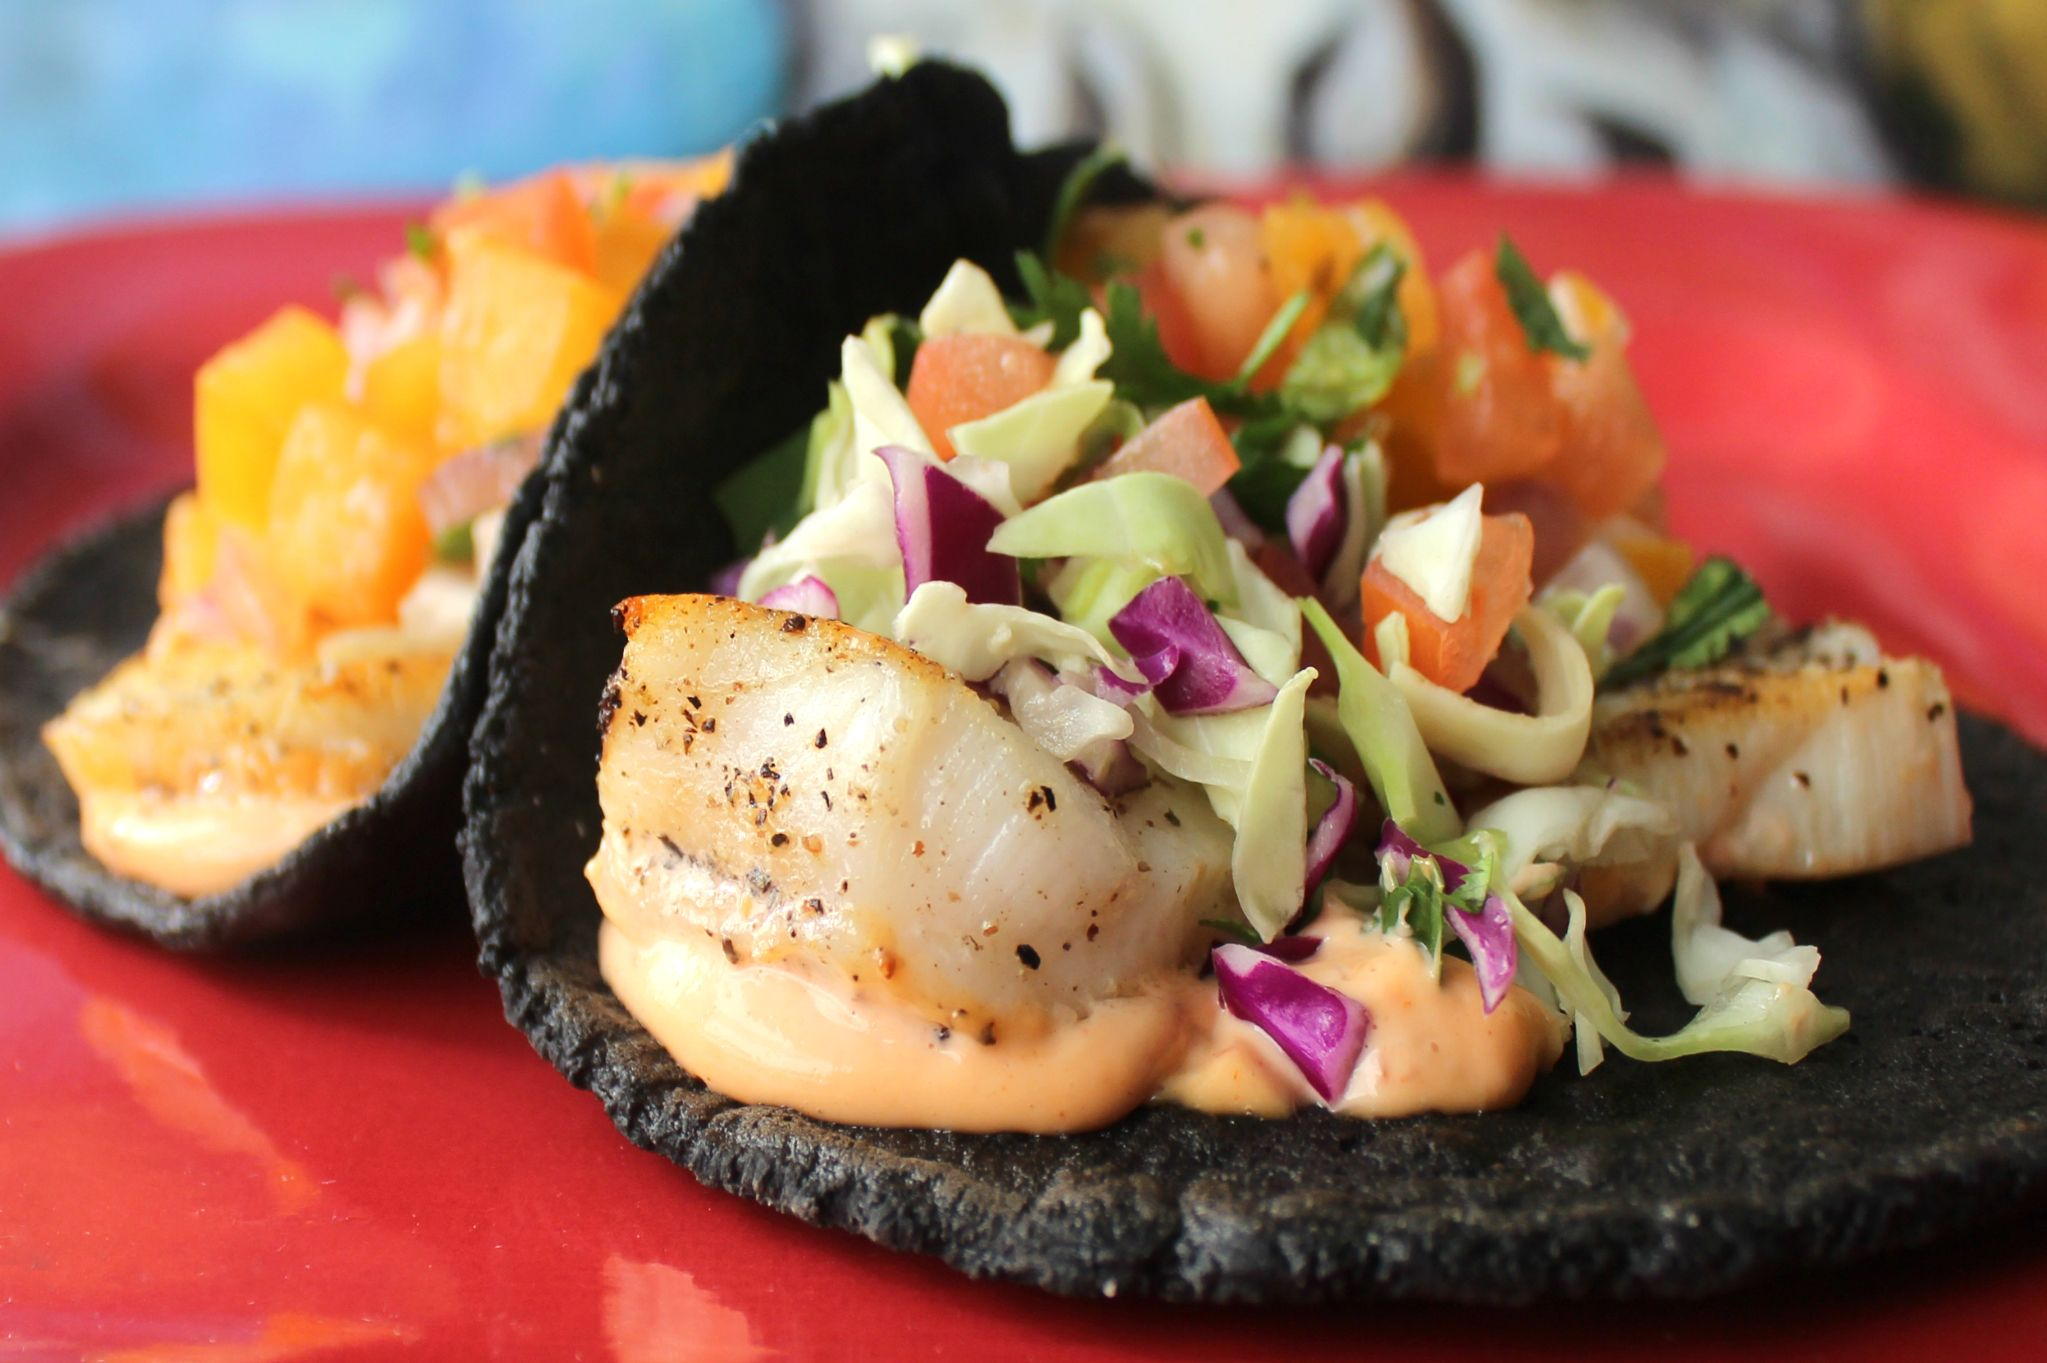 A velvety rich sensation, our grilled Chilean Sea Bass on tortilla de huitlacoche is not only our #Tacolandia star this Saturday but also at today's stops: (1) LUNCH 11A – 2P OC Fair, 88 Fair Dr #CostaMesa CA; and, (2) DINNER 4:30P – 7:30P Westpark Elementary, 25 San Carlo #Irvine CA.  More: http://www.sohotaco.com/2015/06/04/try-our-tacolandia-special-today-in-costa-mesa-irvine #tacocatering #ocfoodies #tacolandia2015 #tacolandiaLA #ocfair